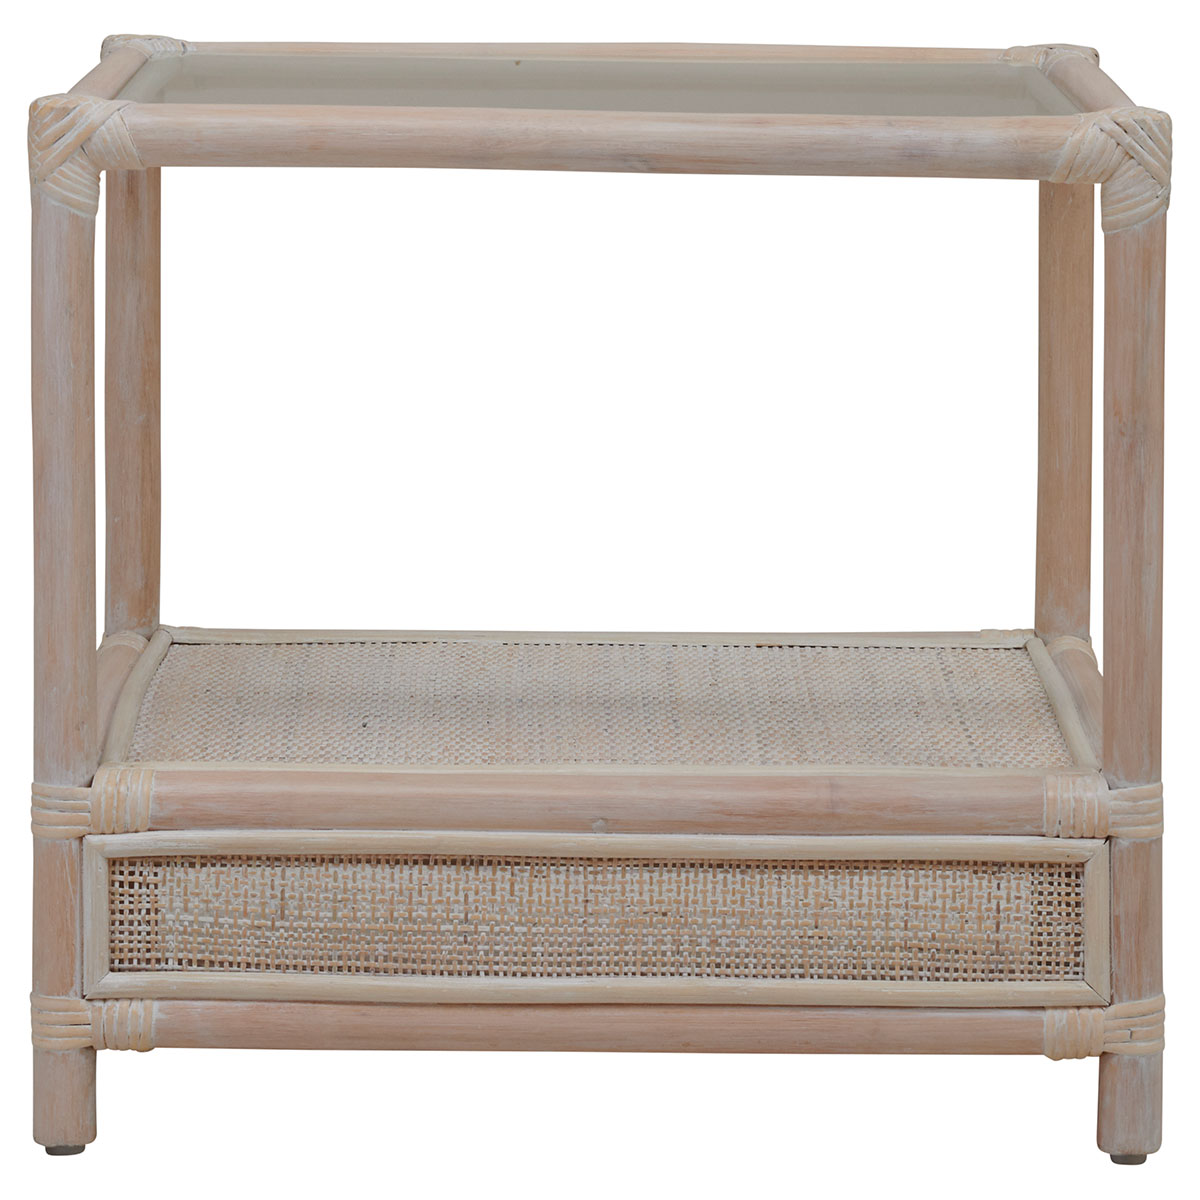 SUTTON SIDE TABLE in white wash rattan